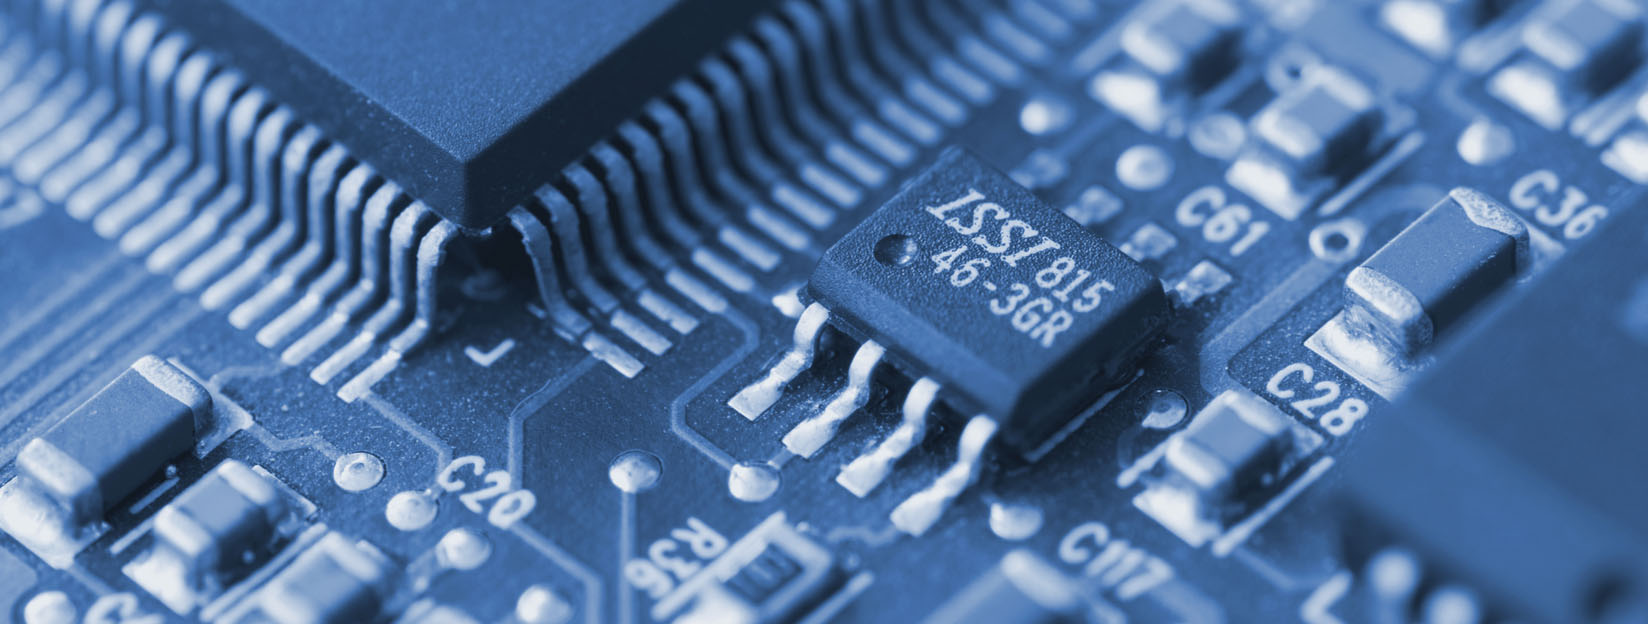 Active Electronic Components Market Pegged at $376.9 Bn by 2023